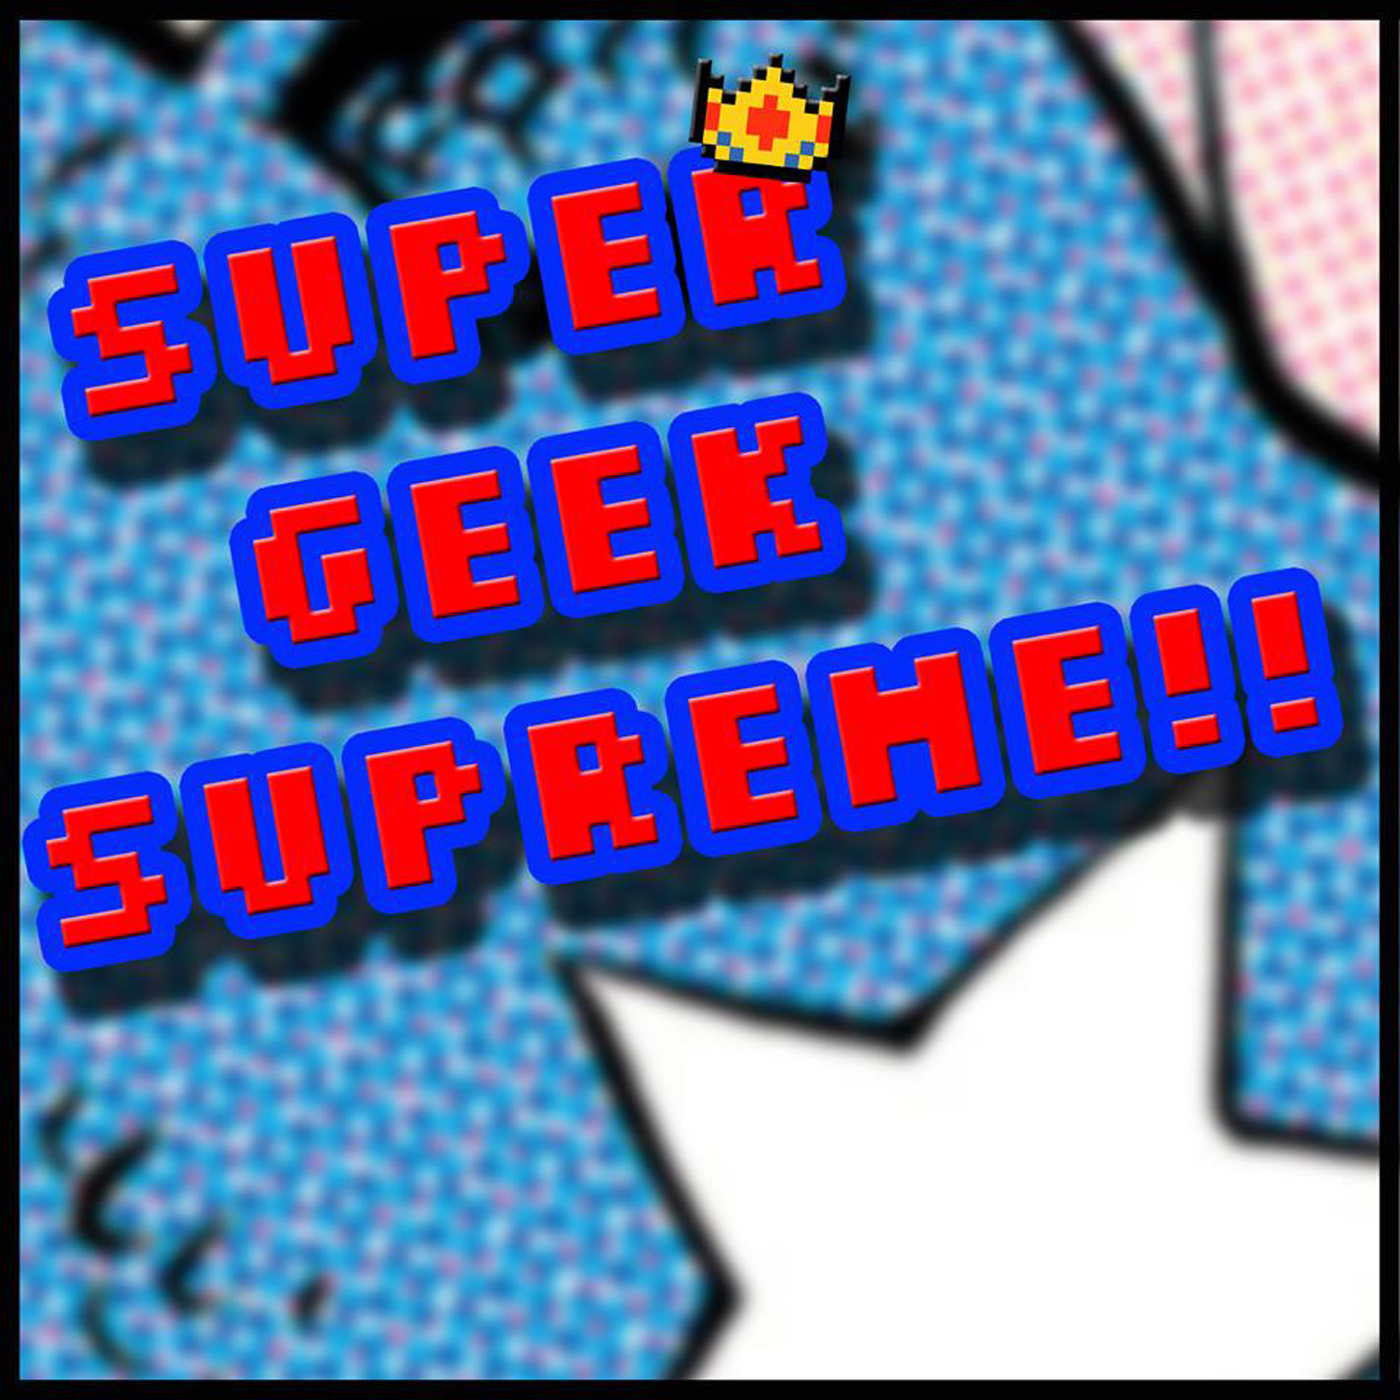 SUPER GEEK SUPREME!! - SUPER GEEK SUPREME!!